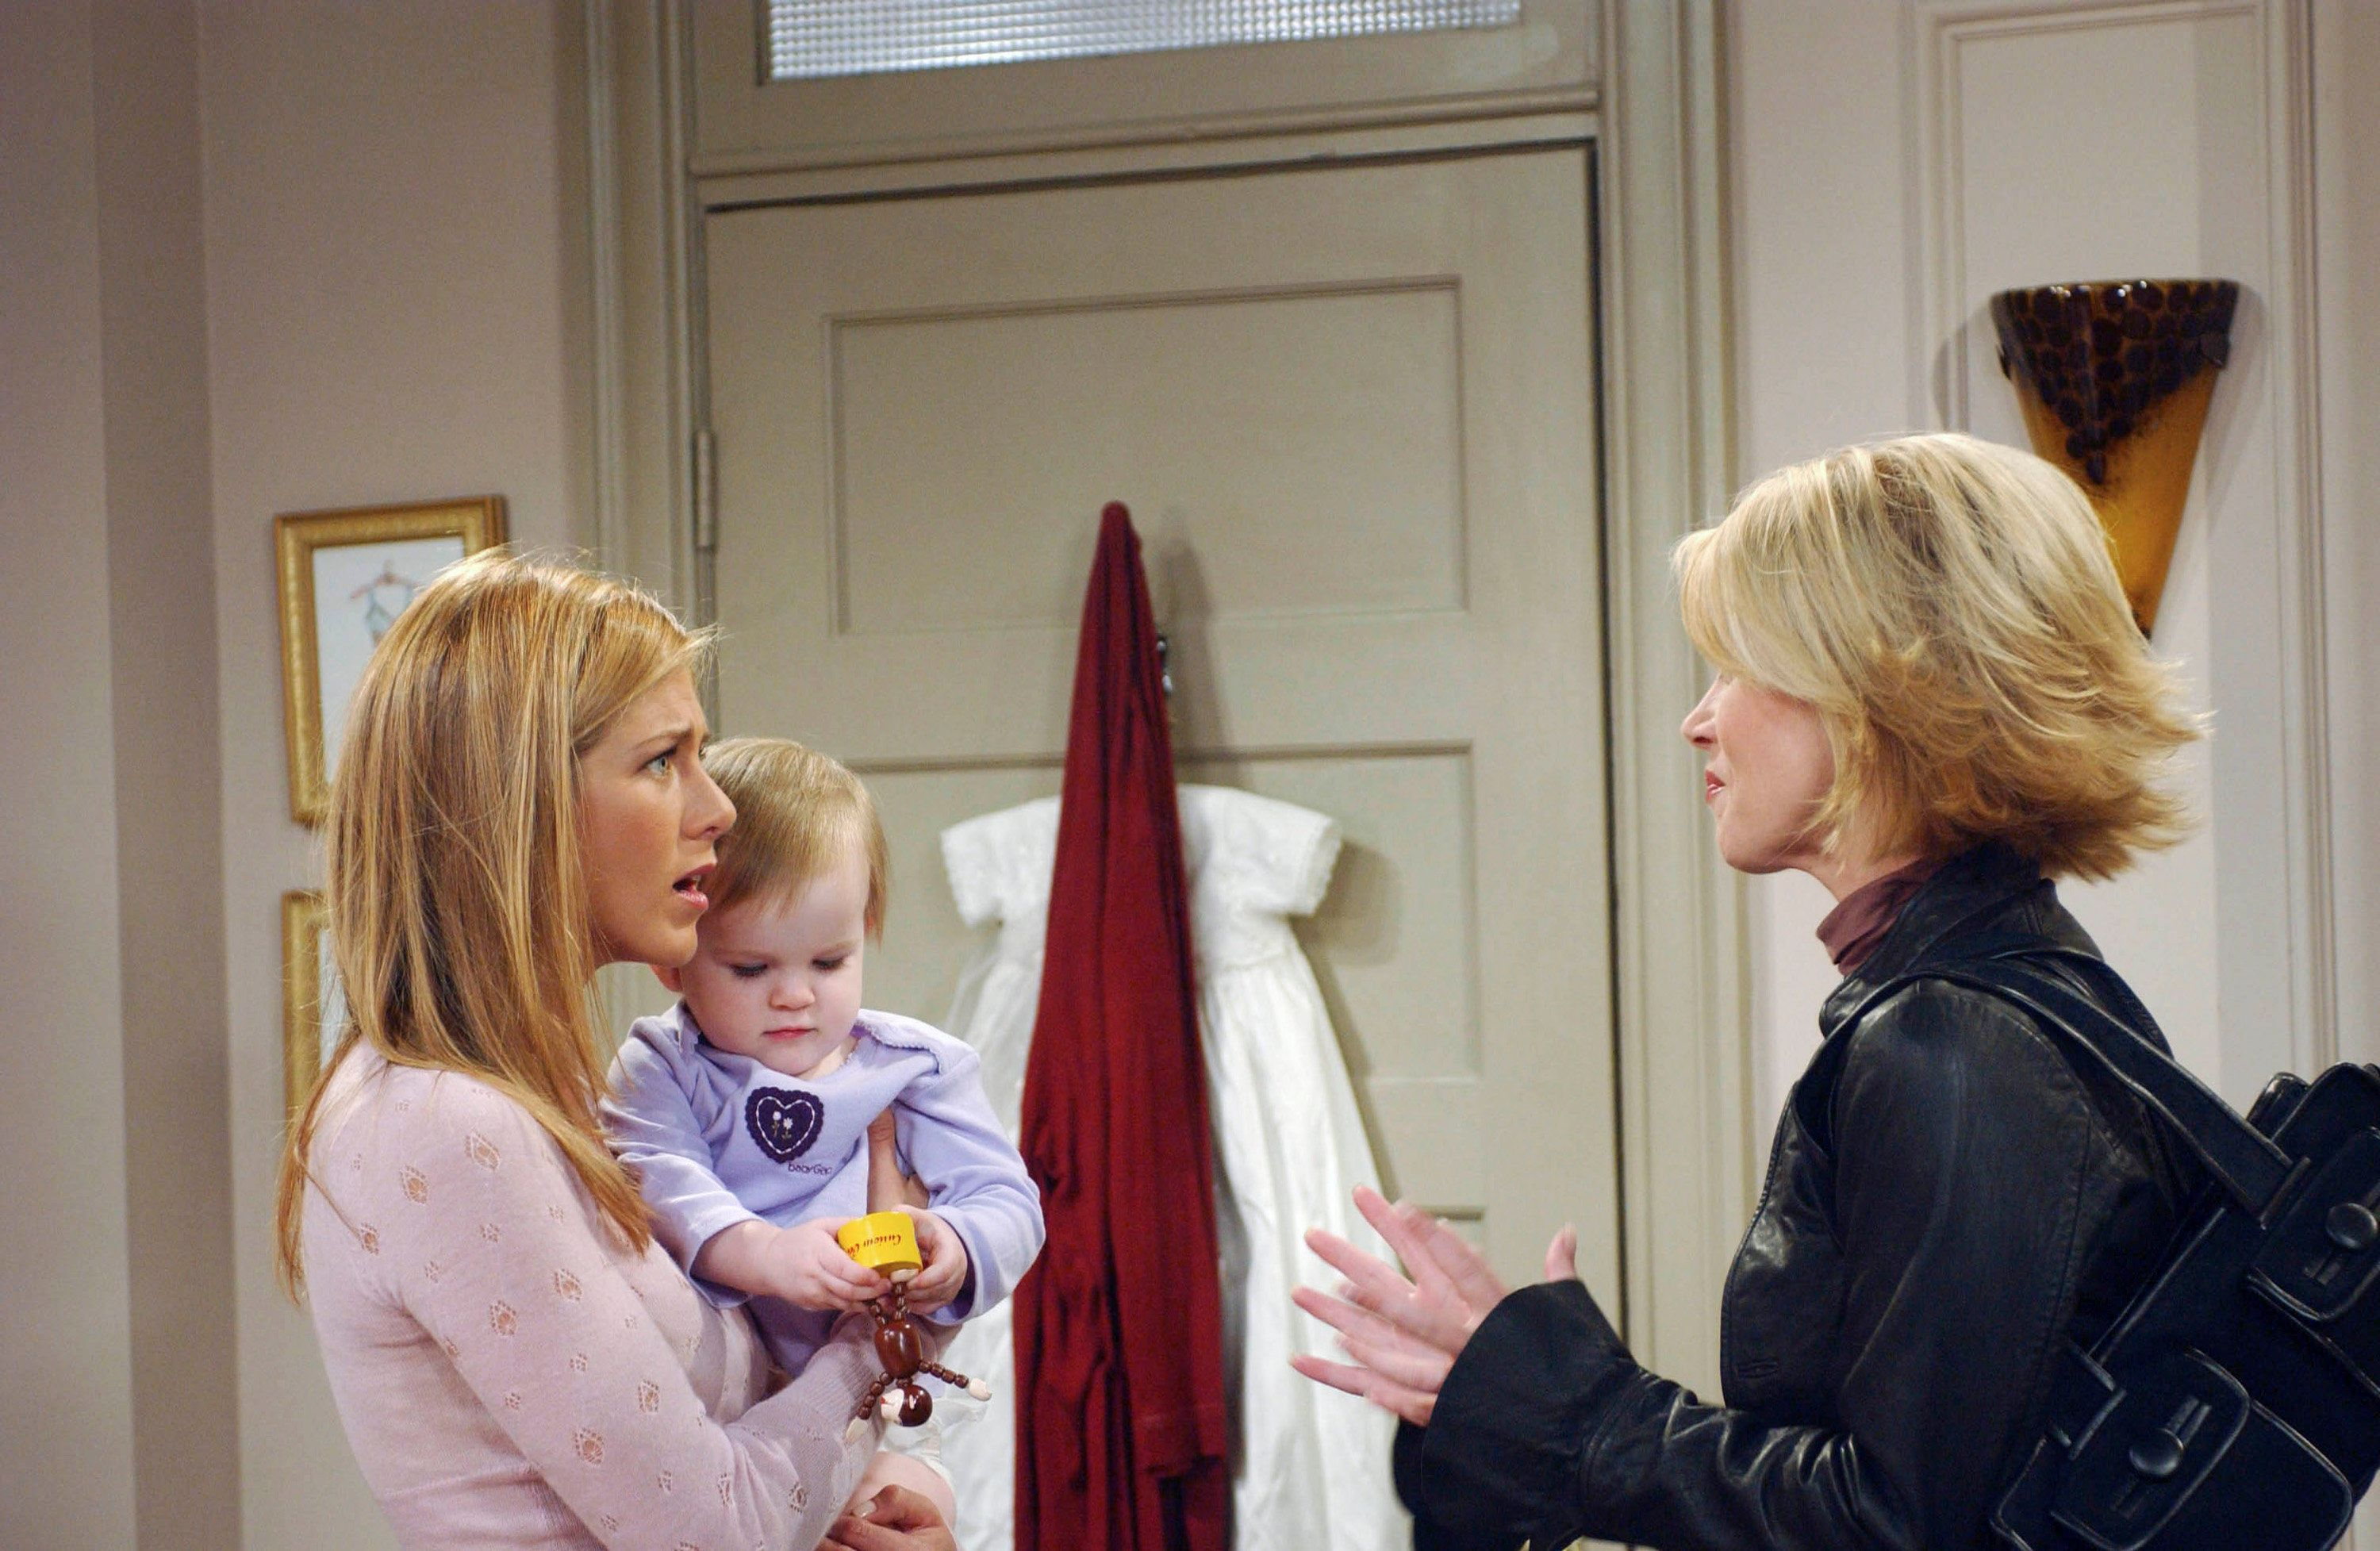 FRIENDS -- 'The One Where Rachel's Sister Babysits' -- Episode 5 -- Aired 10/30/2003 -- Pictured: (l-r) Jennifer Aniston as Rachel Green, Cali Sheldon/Noelle Sheldon as Emma Geller-Green, Christina Applegate as Amy Green -- (Photo by: NBC/NBCU Photo Bank via Getty Images)